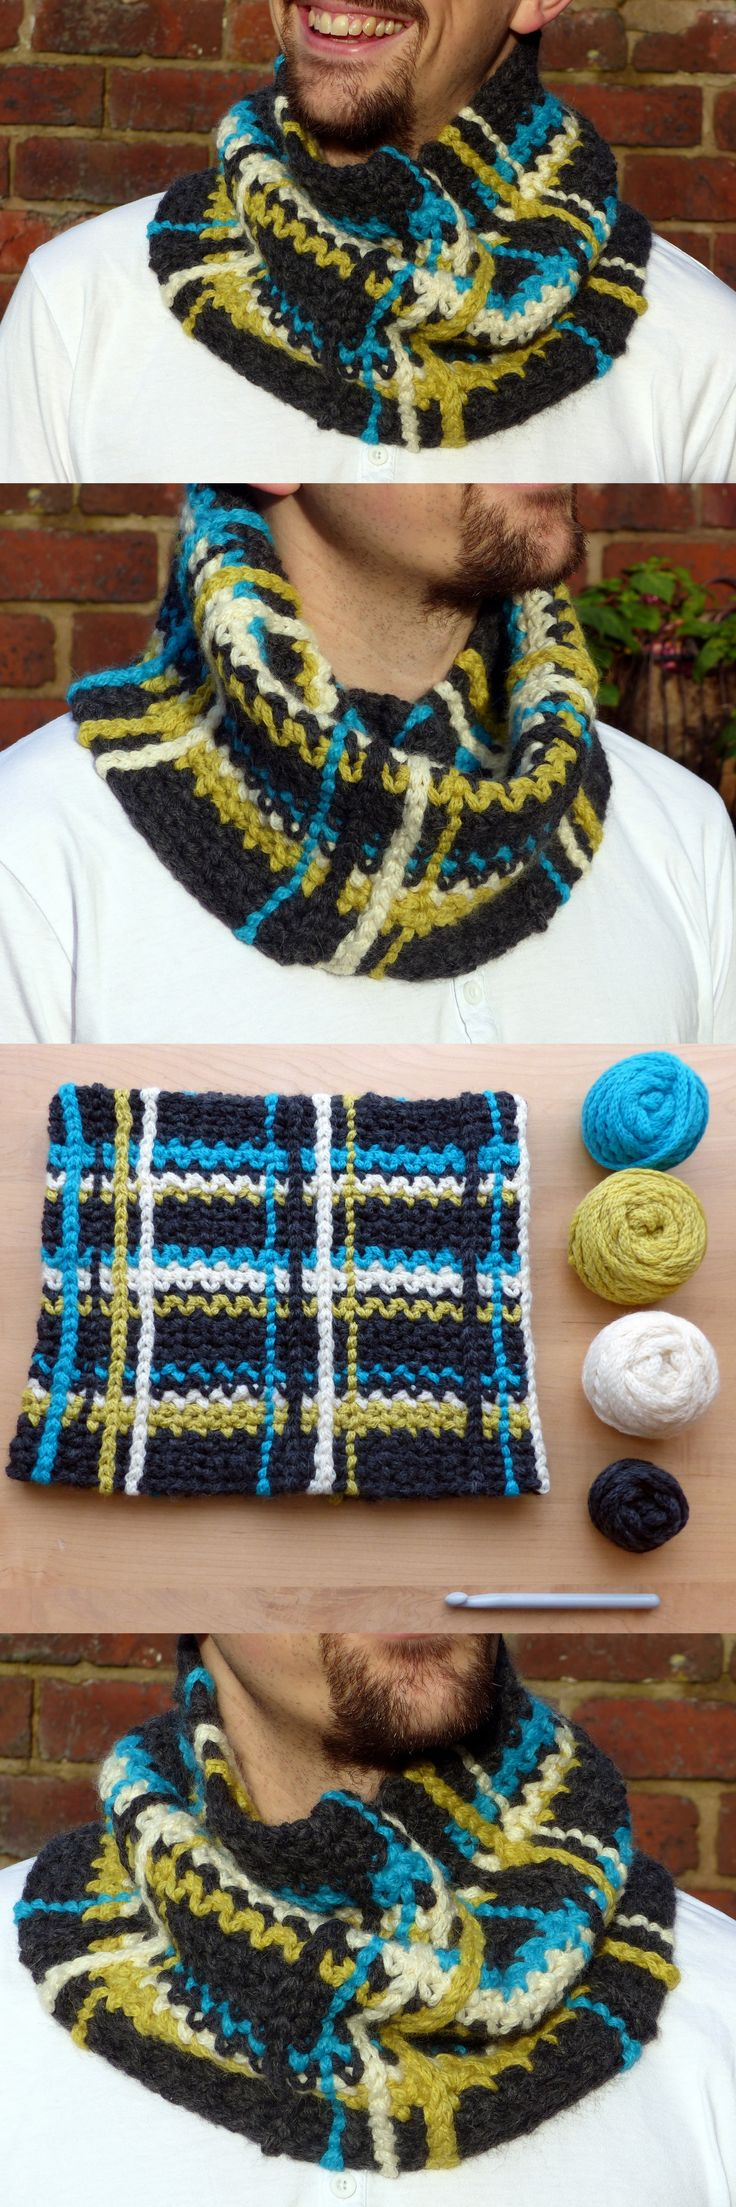 Plaid Cowl – A super easy free crochet pattern from Make My Day Creative. Para hombre patrón gratis.